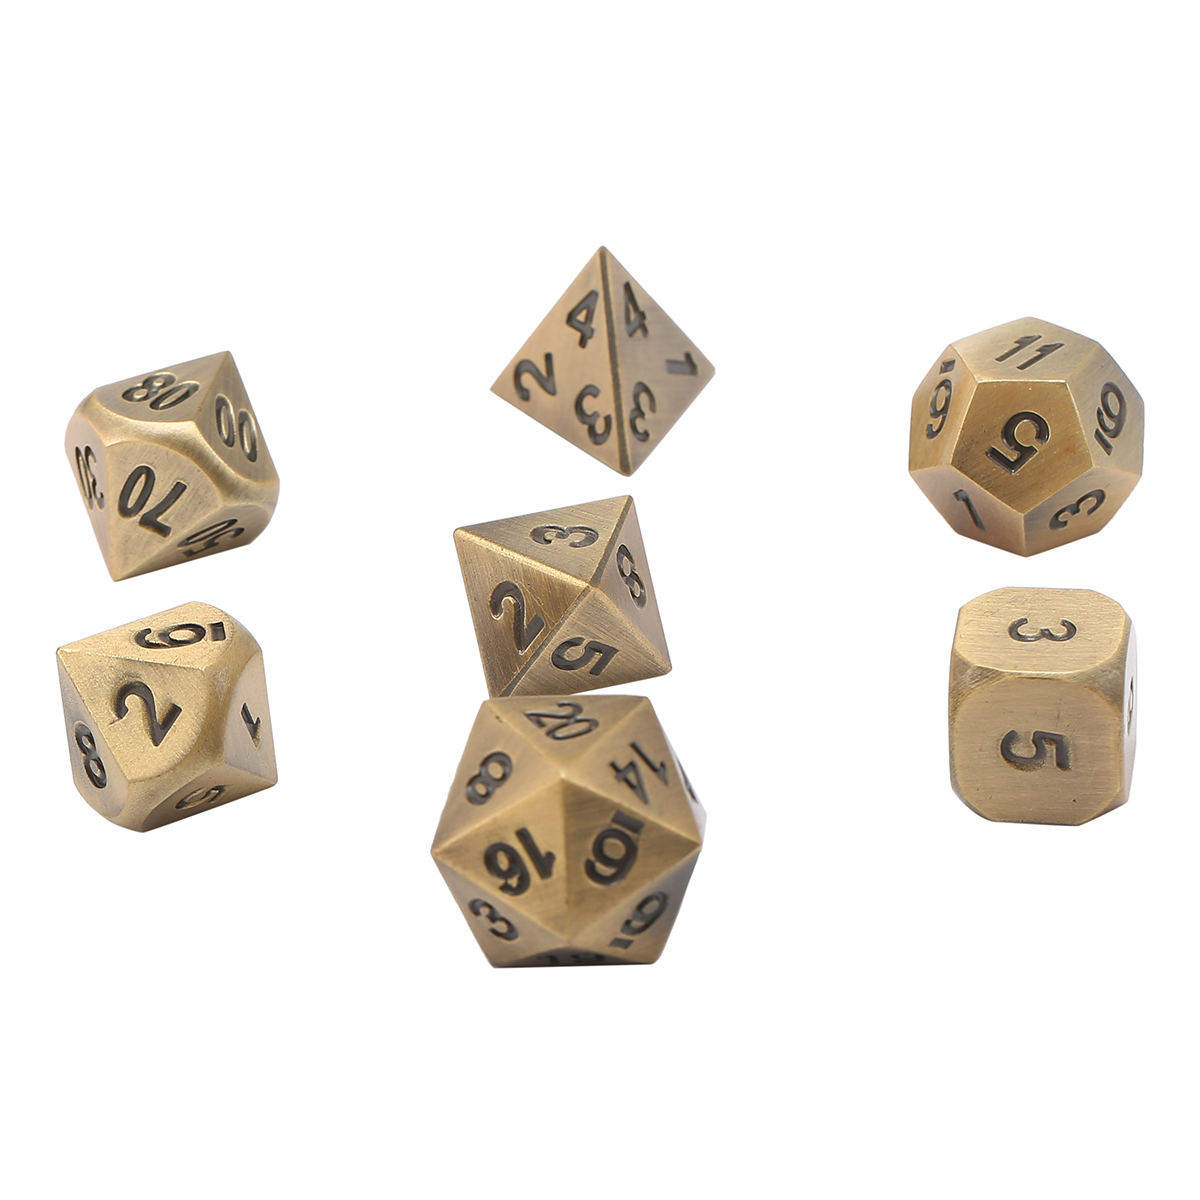 Moaere 7-Die Metal Polyhedral Dice Set Metal Case With Dice Pouch for Dungeons & Dragons Role Playing Game Pathfinder RPG and Math Teaching